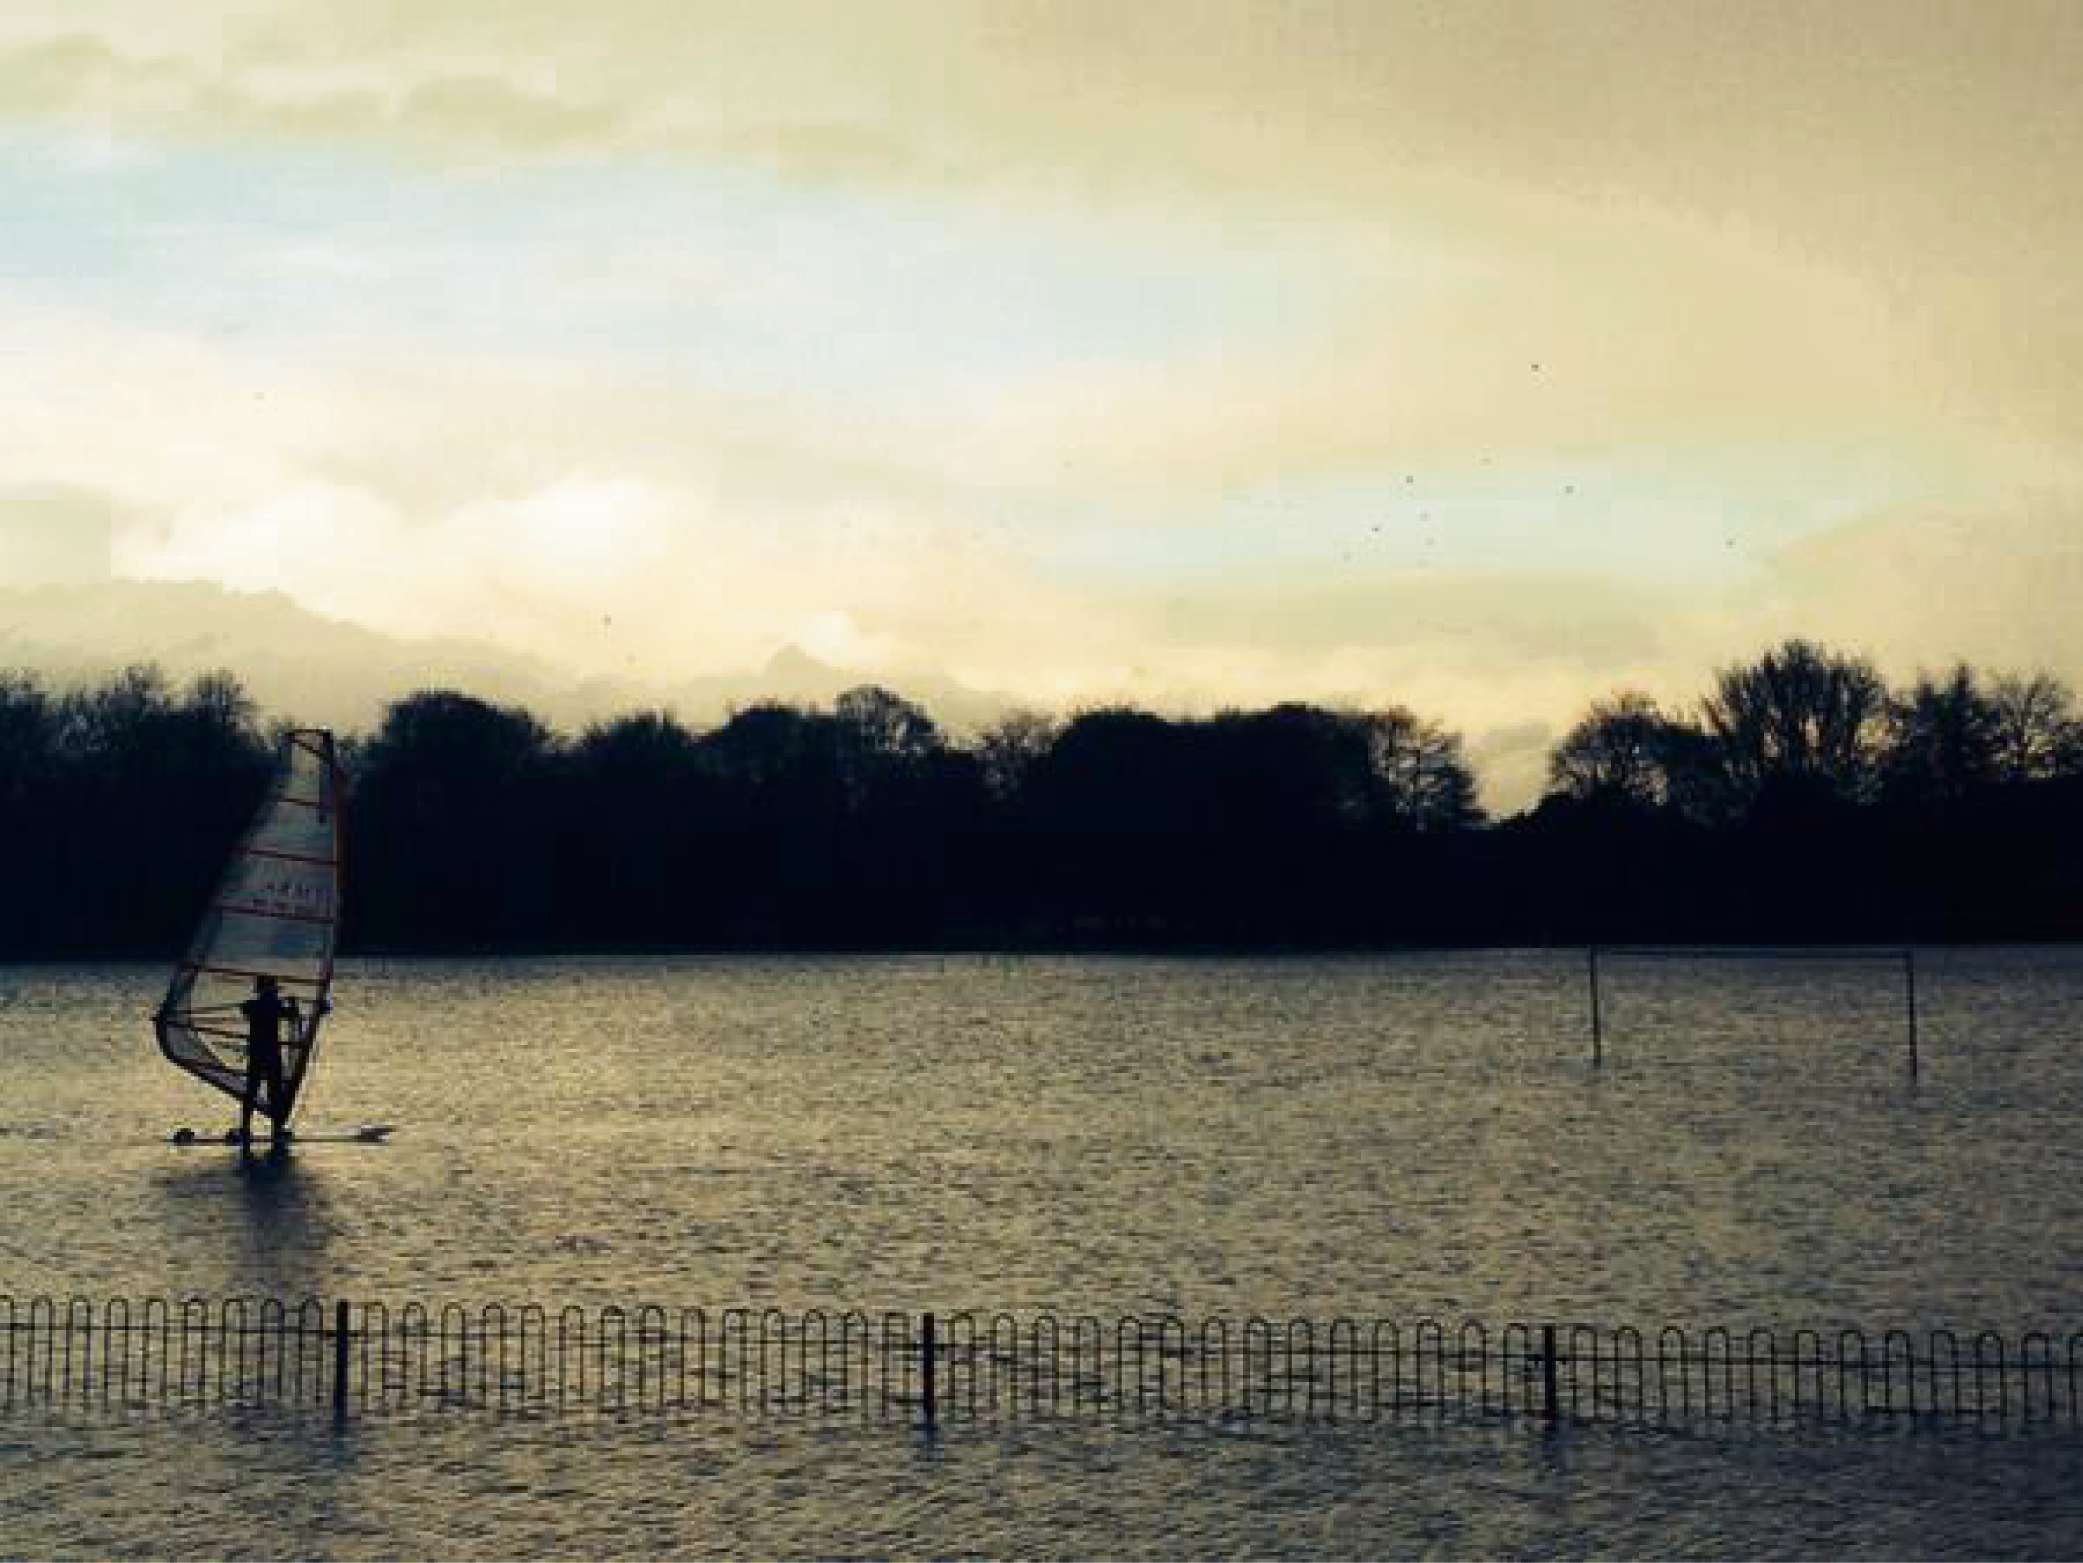 One watersports enthusiast made the most of the early-January flooding on Bishop's Meadow.